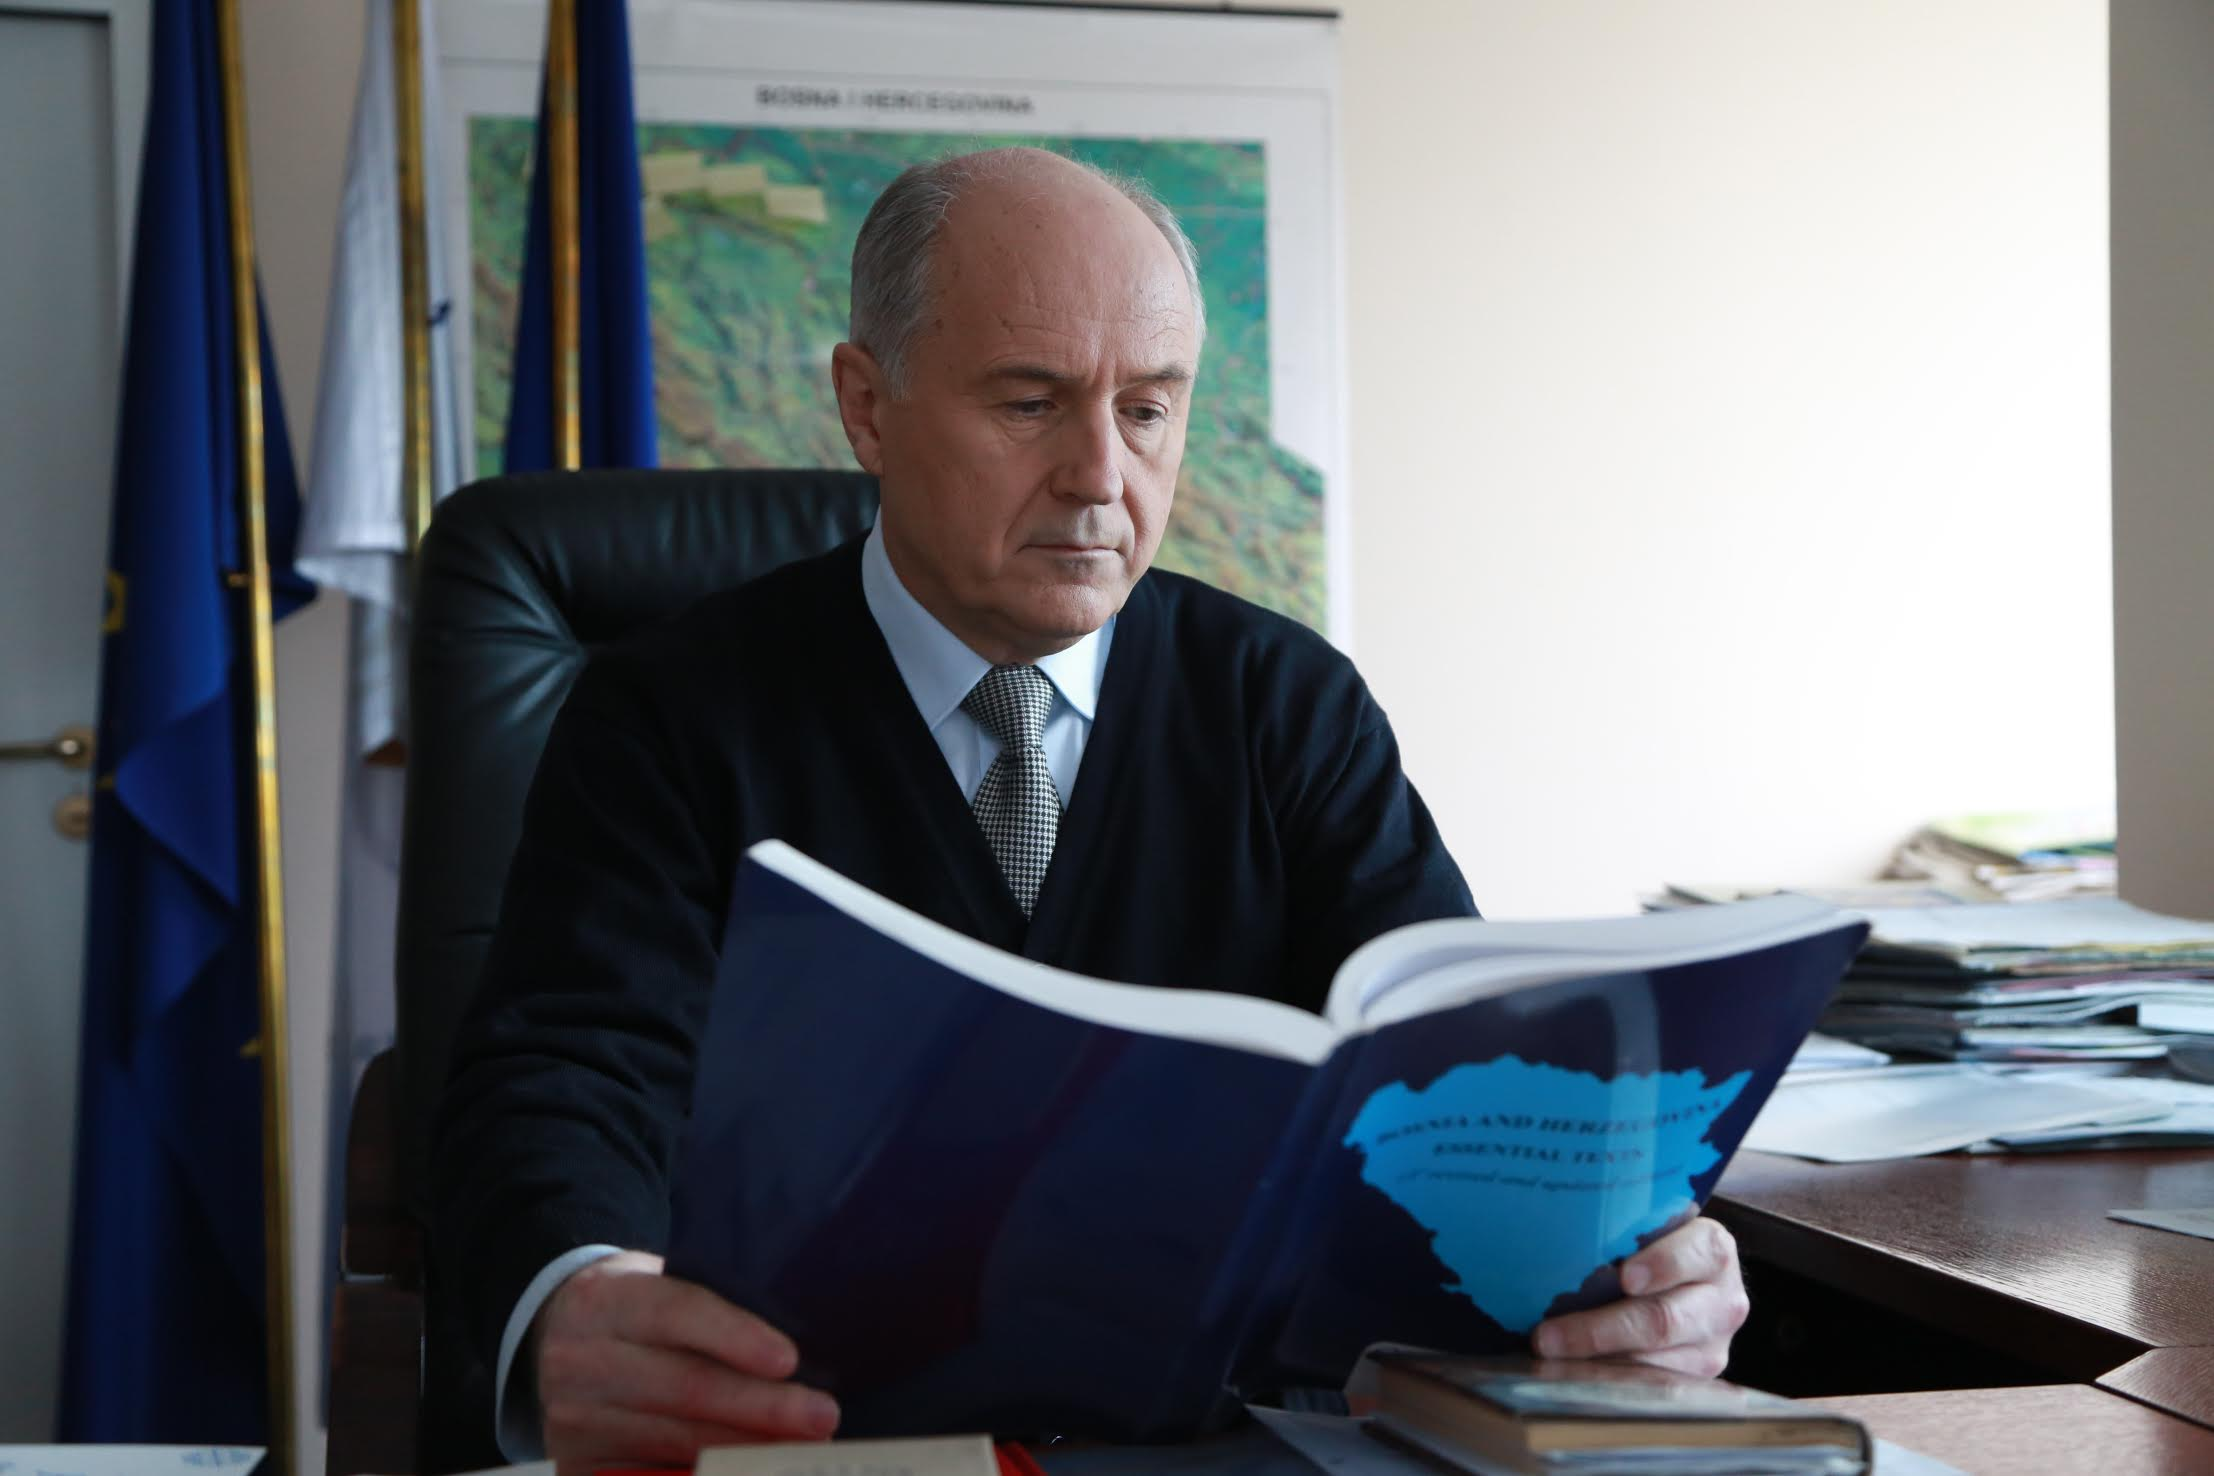 Inzko: BiH parties are already on pre-election mode